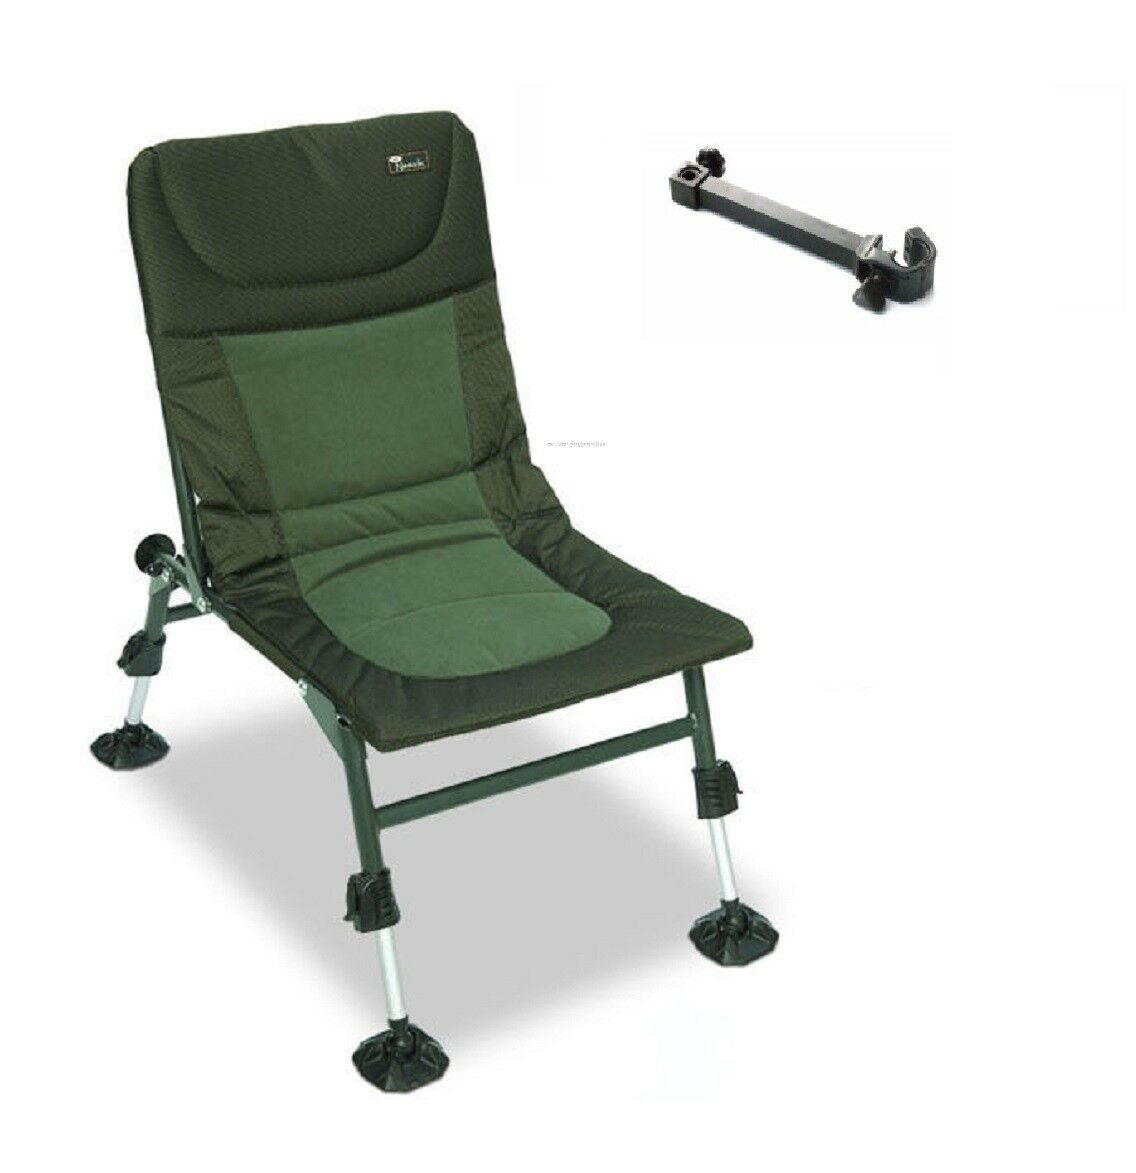 NGT Nomadic Lightweight Folding Carp Fishing Chair Mud Feet & Umbrella arm